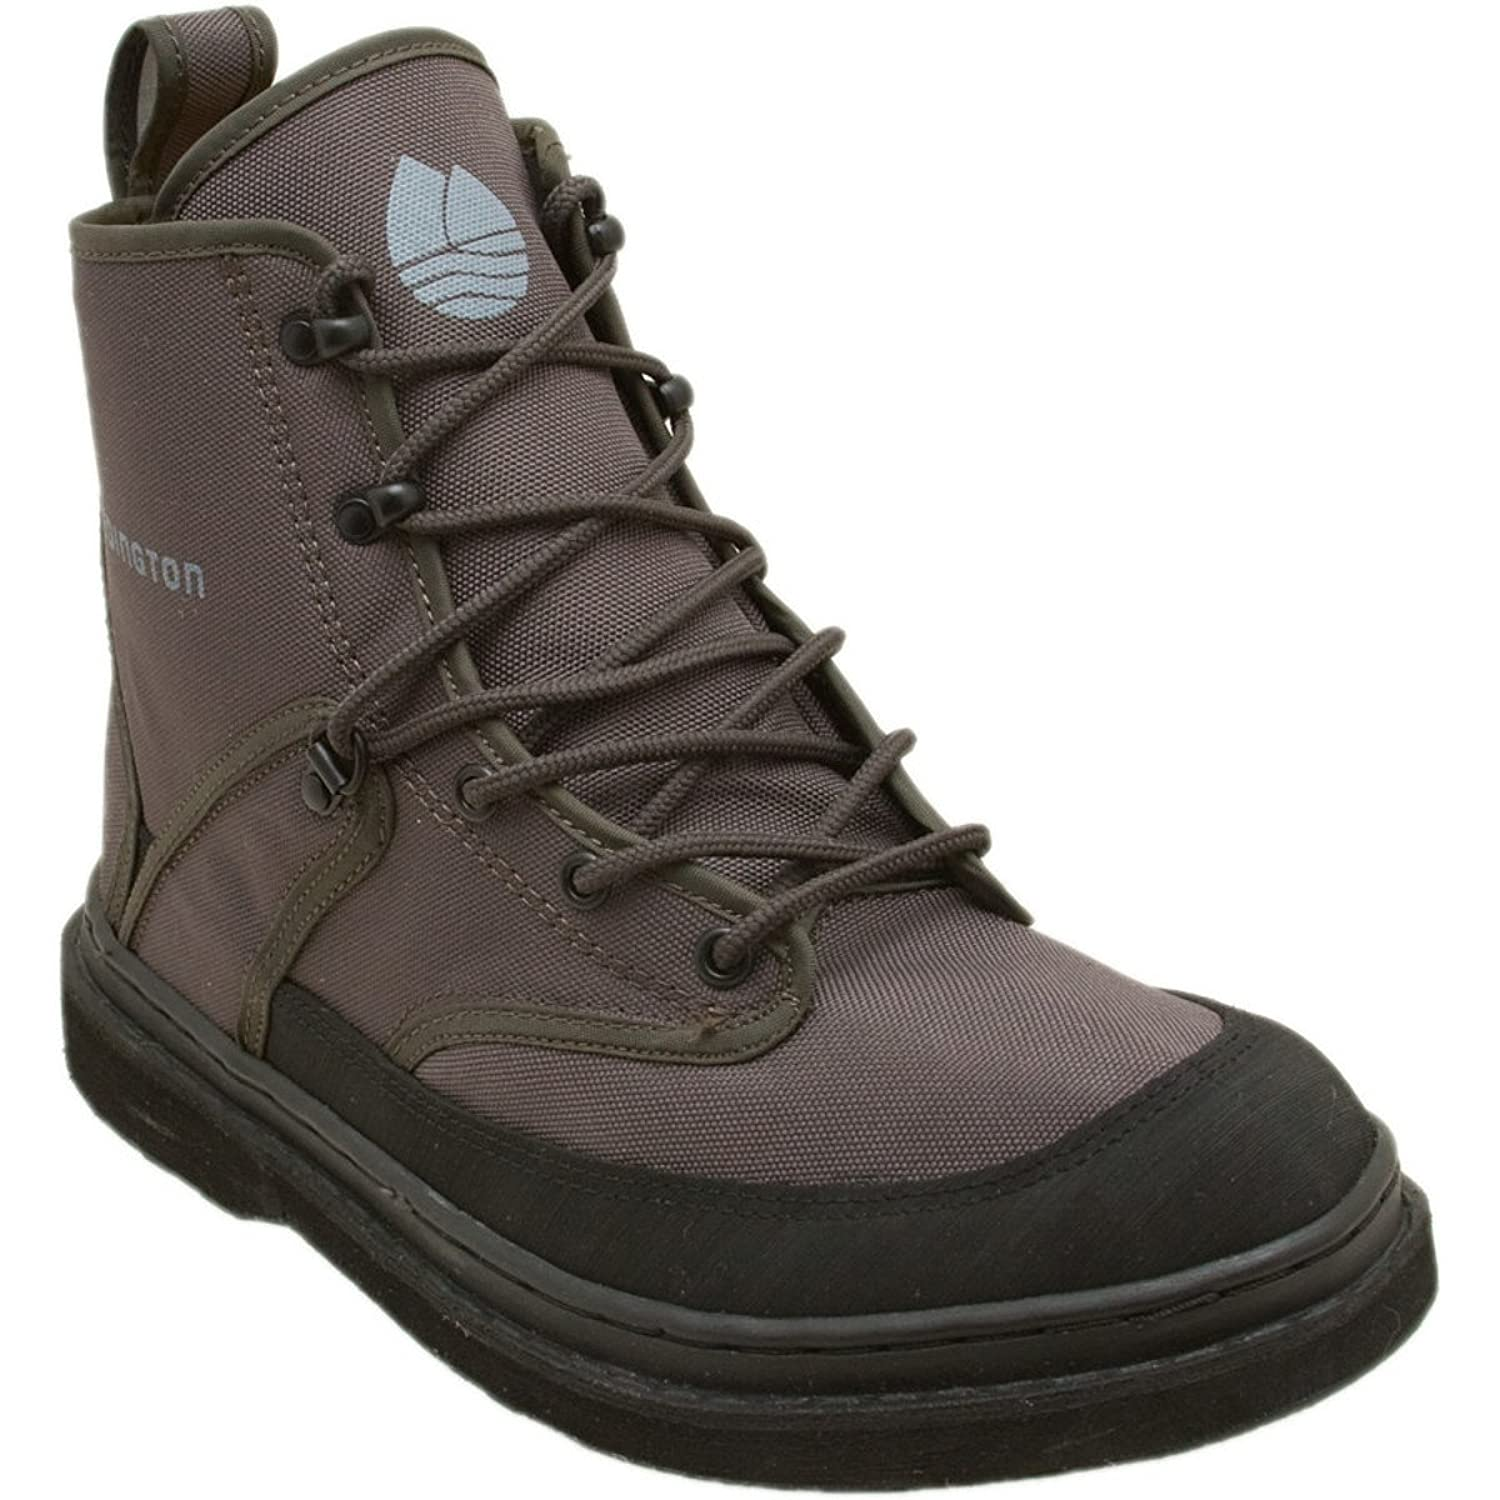 Fishing boots waders fishing shops for Fishing waders with boots